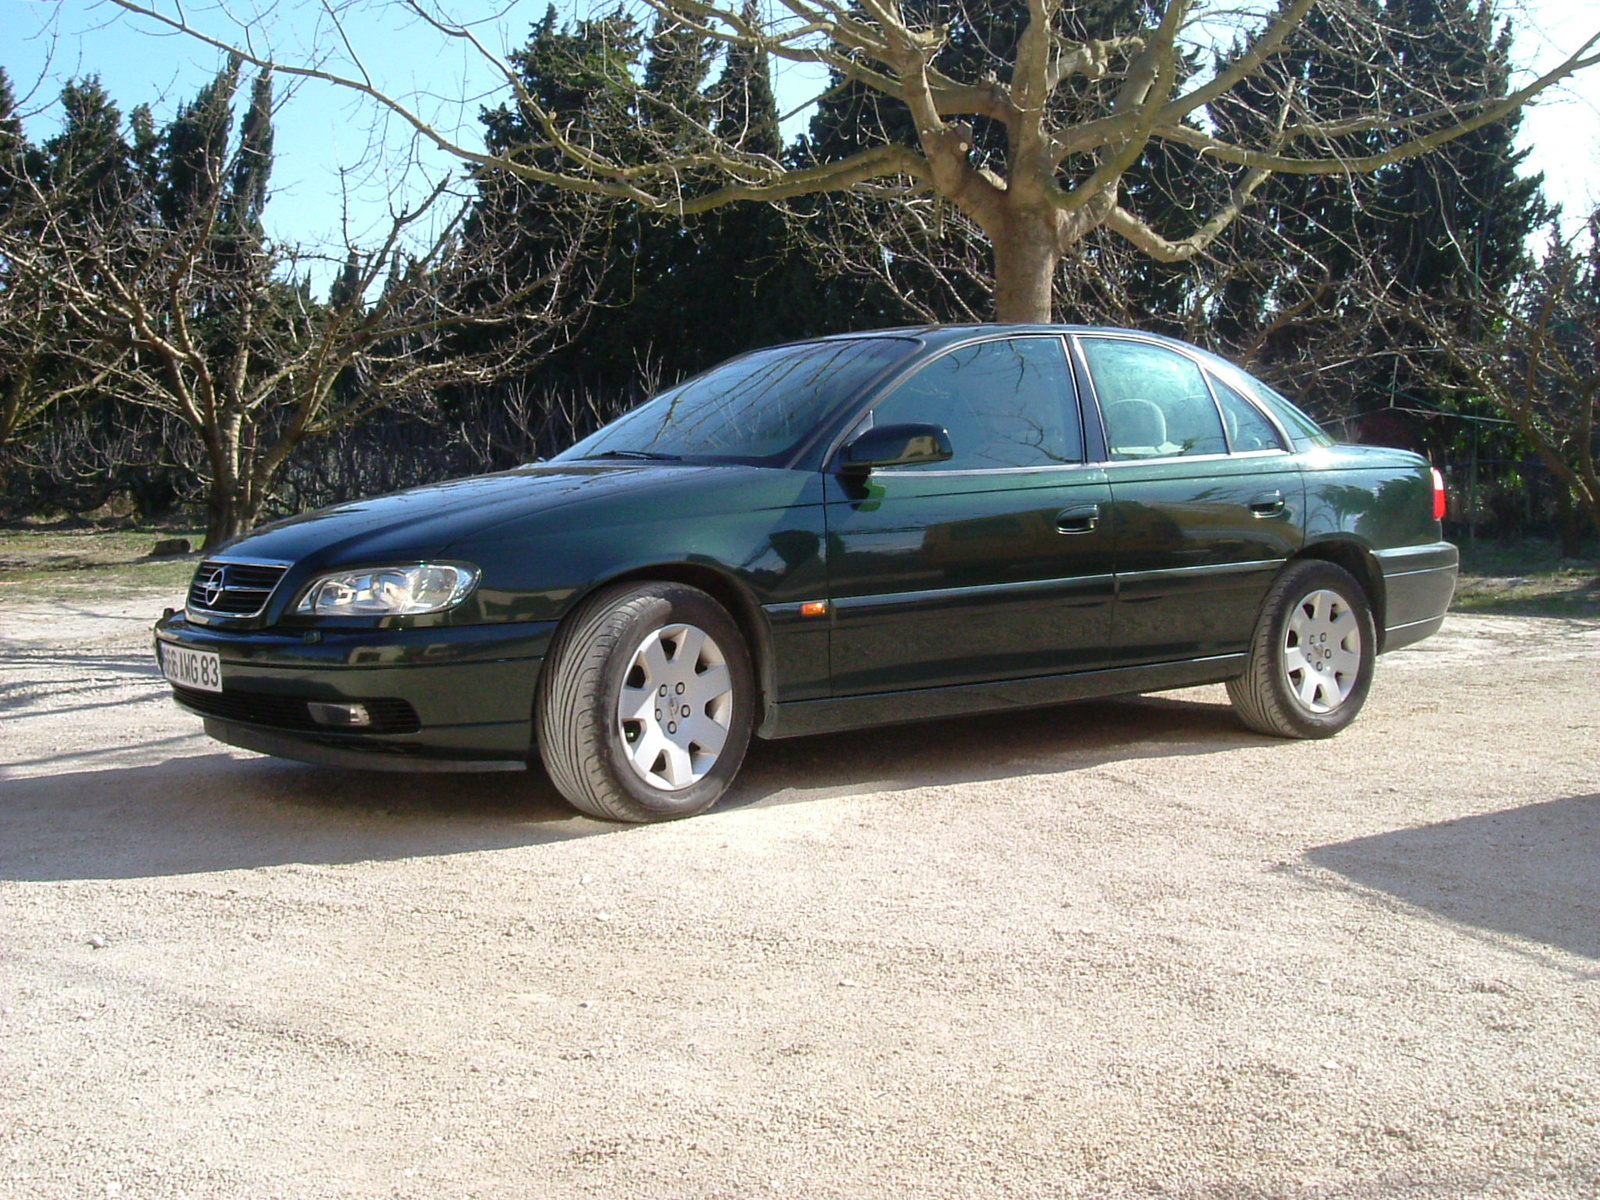 Picture of 2003 Opel Omega